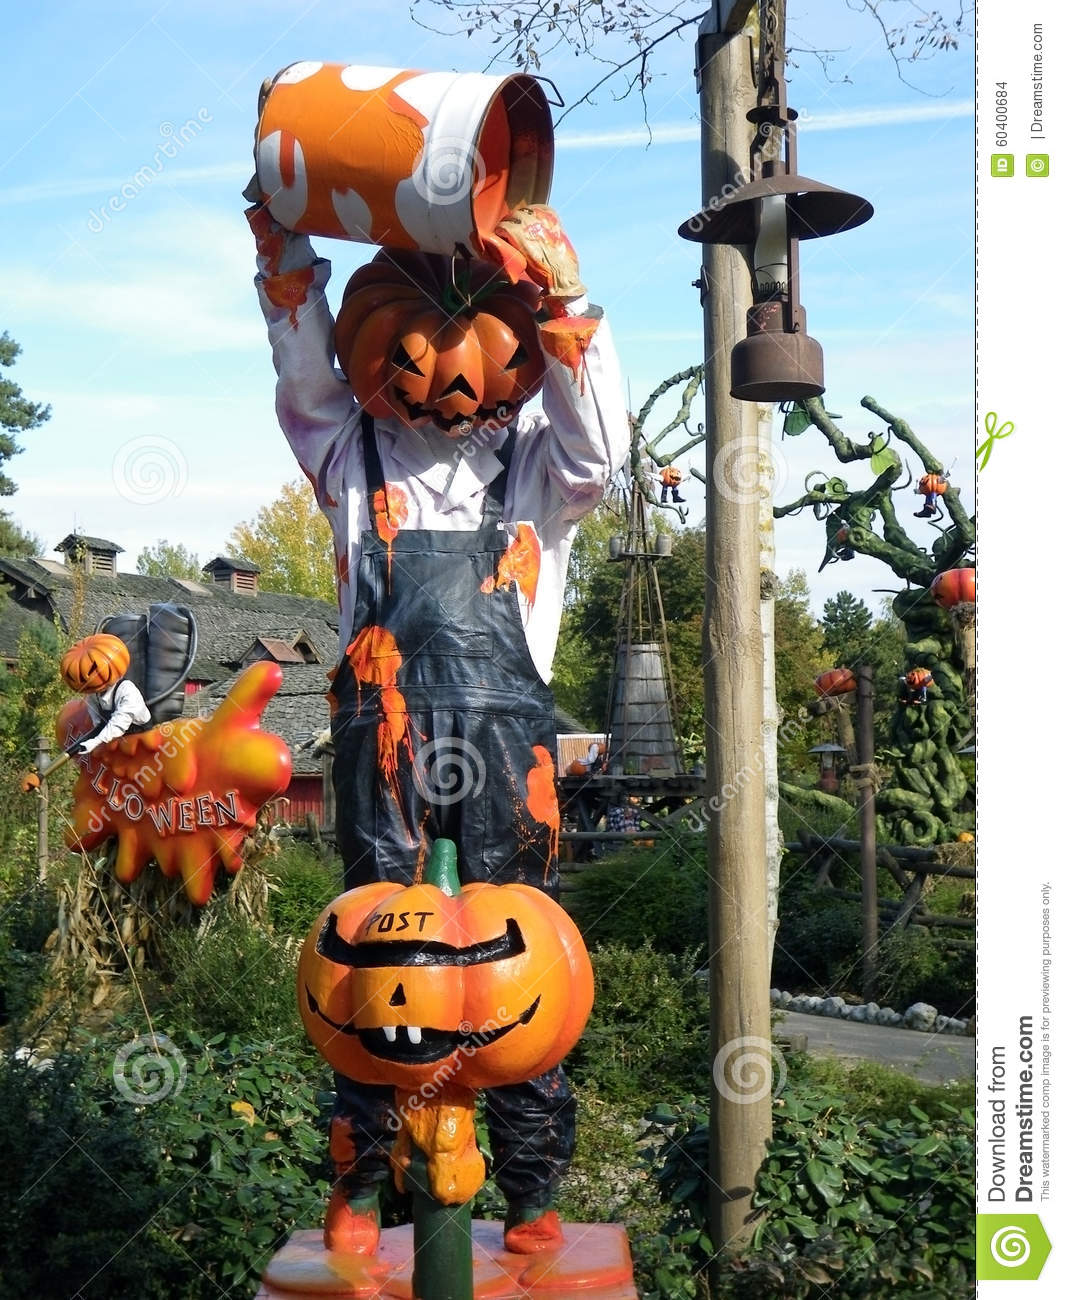 Disneyland Paris Halloween Pumpkins Stock Photo   Image  60400684